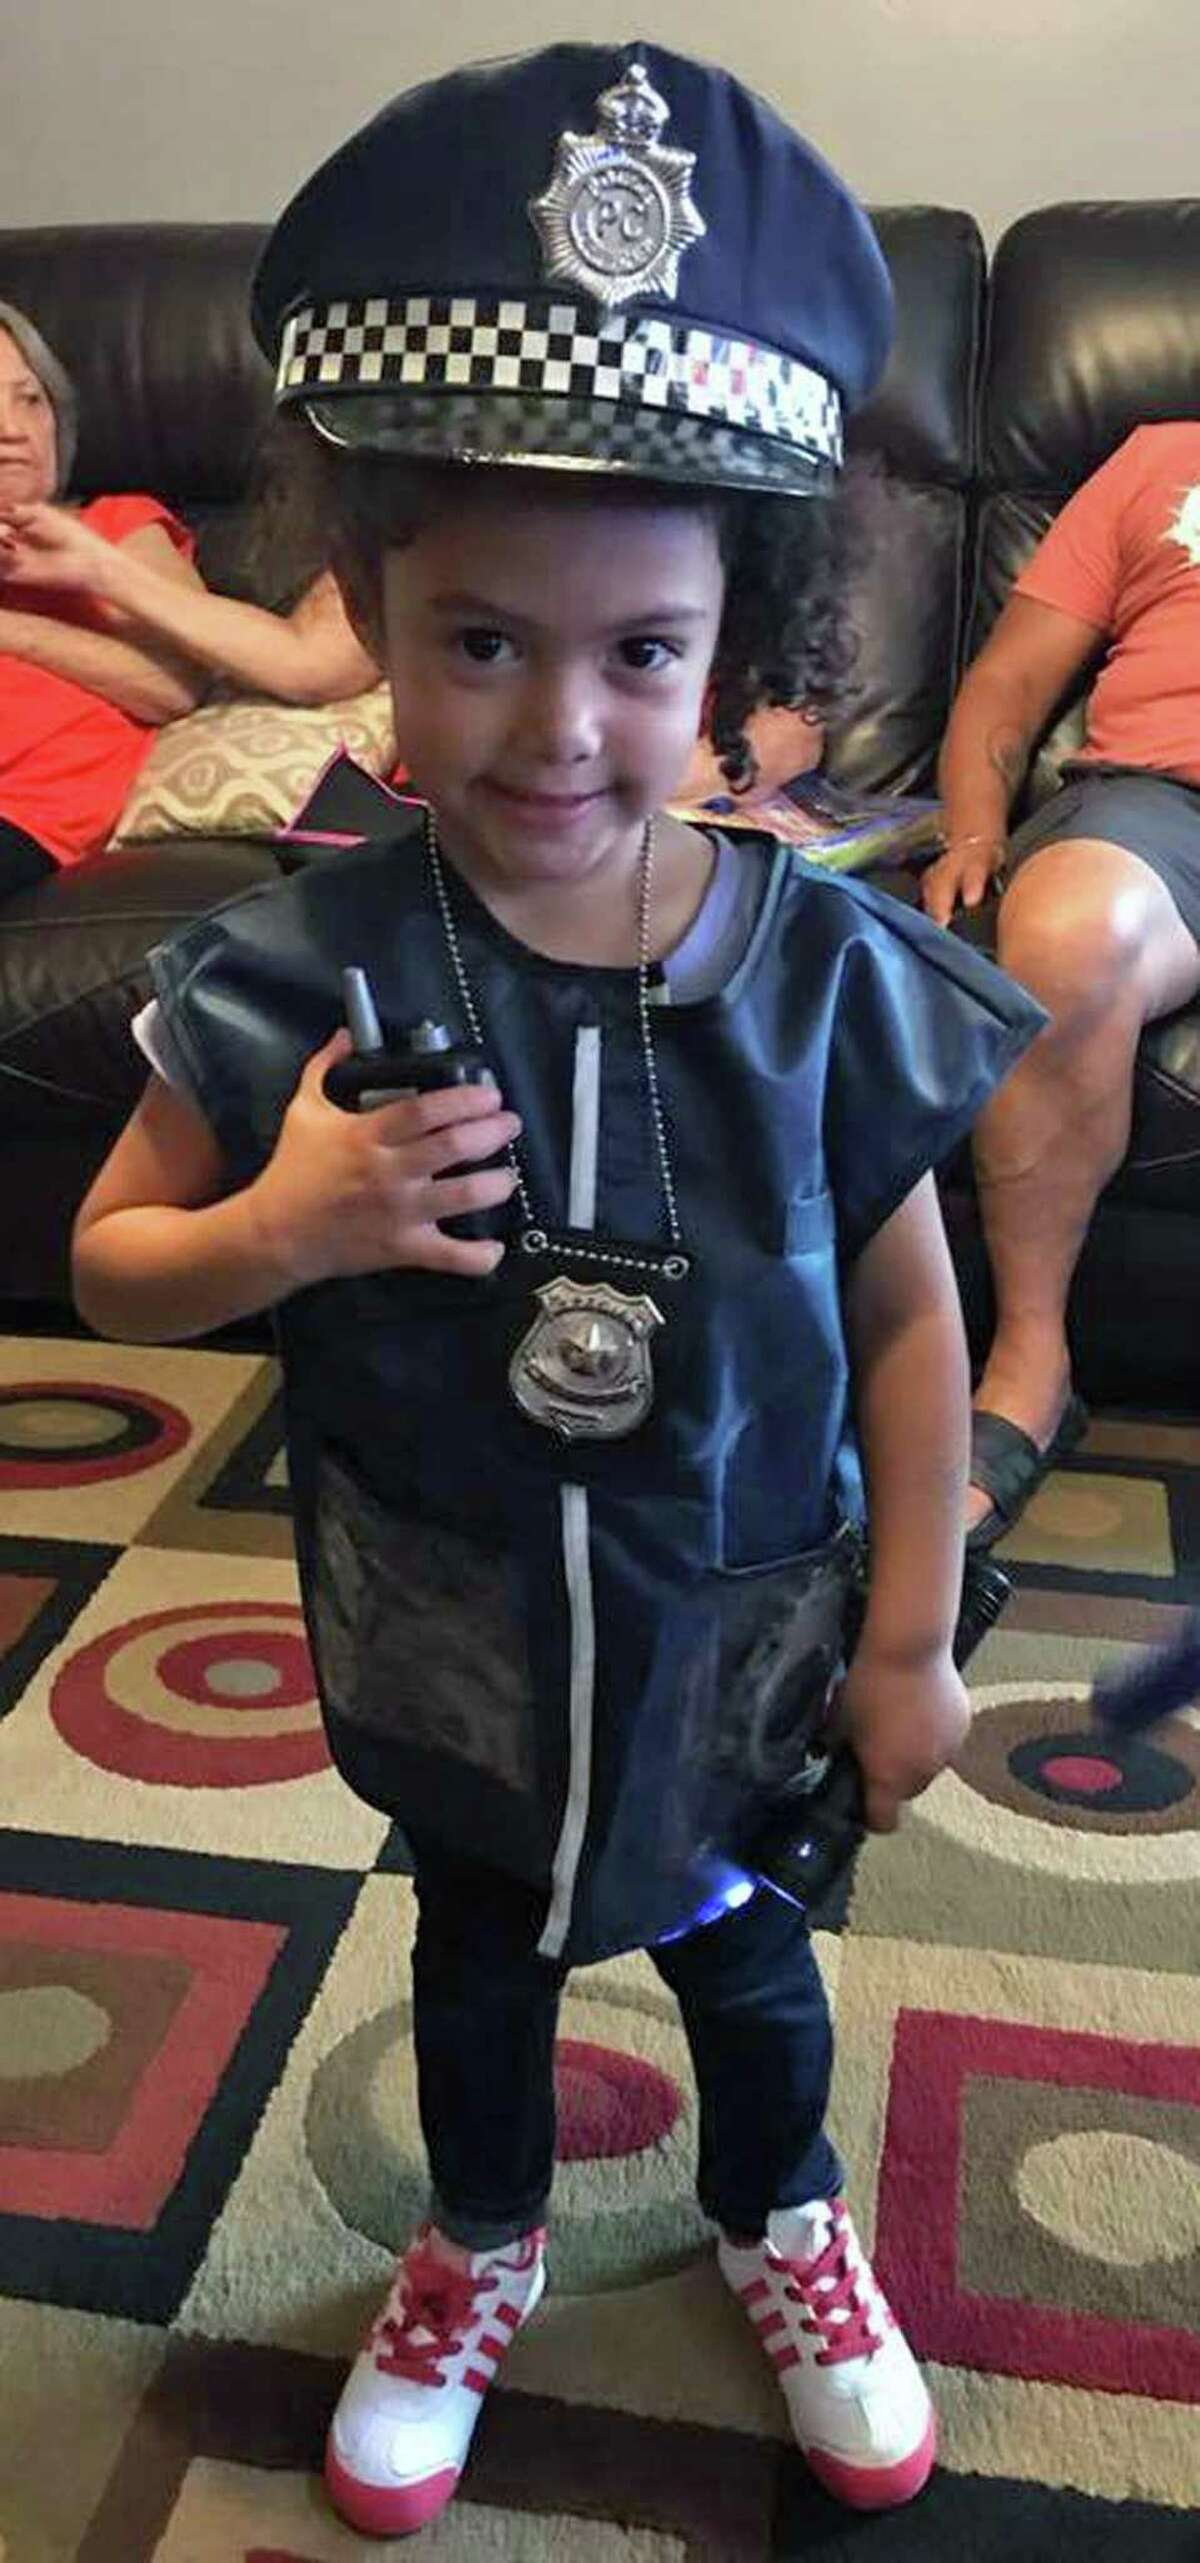 4-year-old Saydie Ramos, of Bridgeport, Conn., poses in her new police uniform. The uniform was purchased by her father, Alex Ramos, and delivered to her by Bridgeport police officers on Sept. 7, 2017.